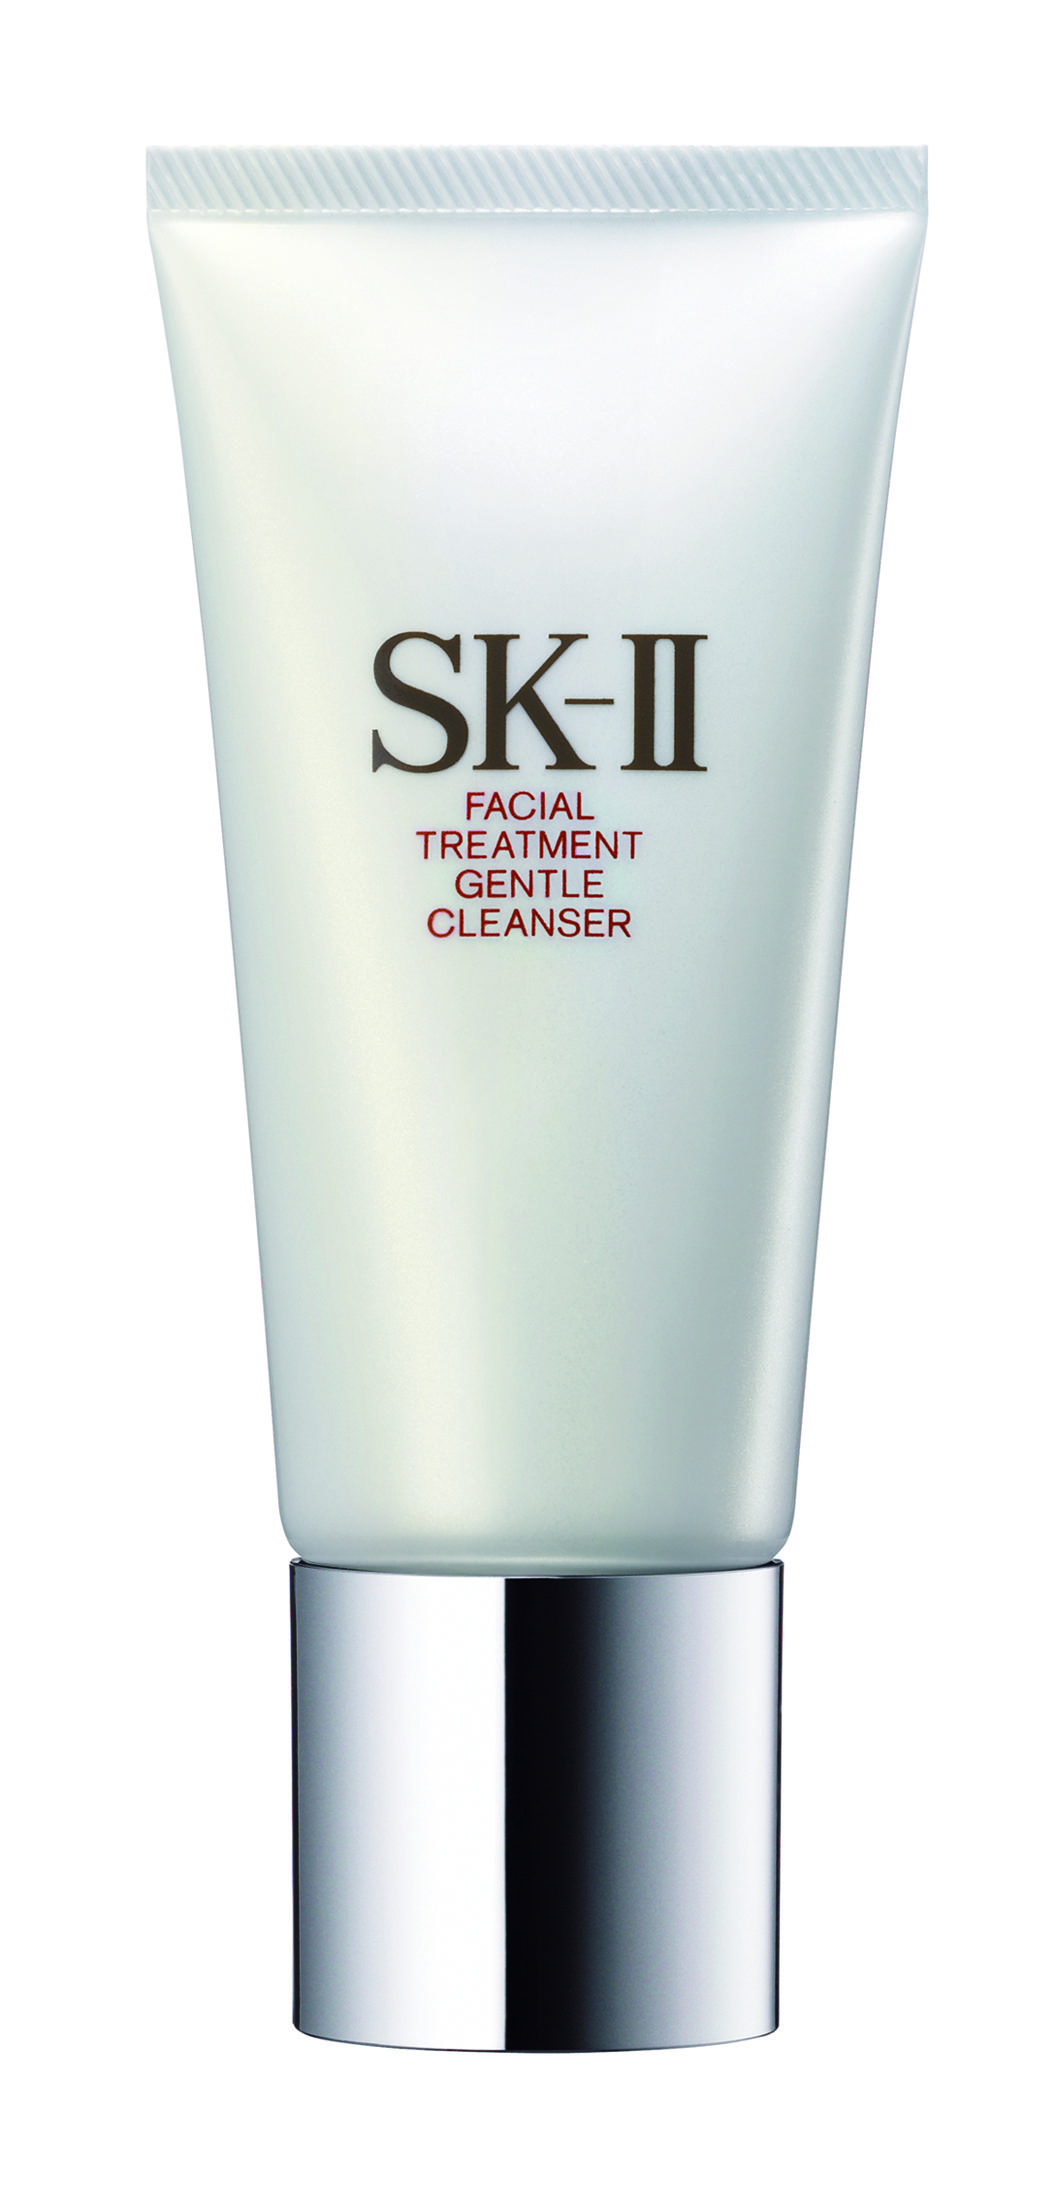 Facial Treatment Gentle Cleanser